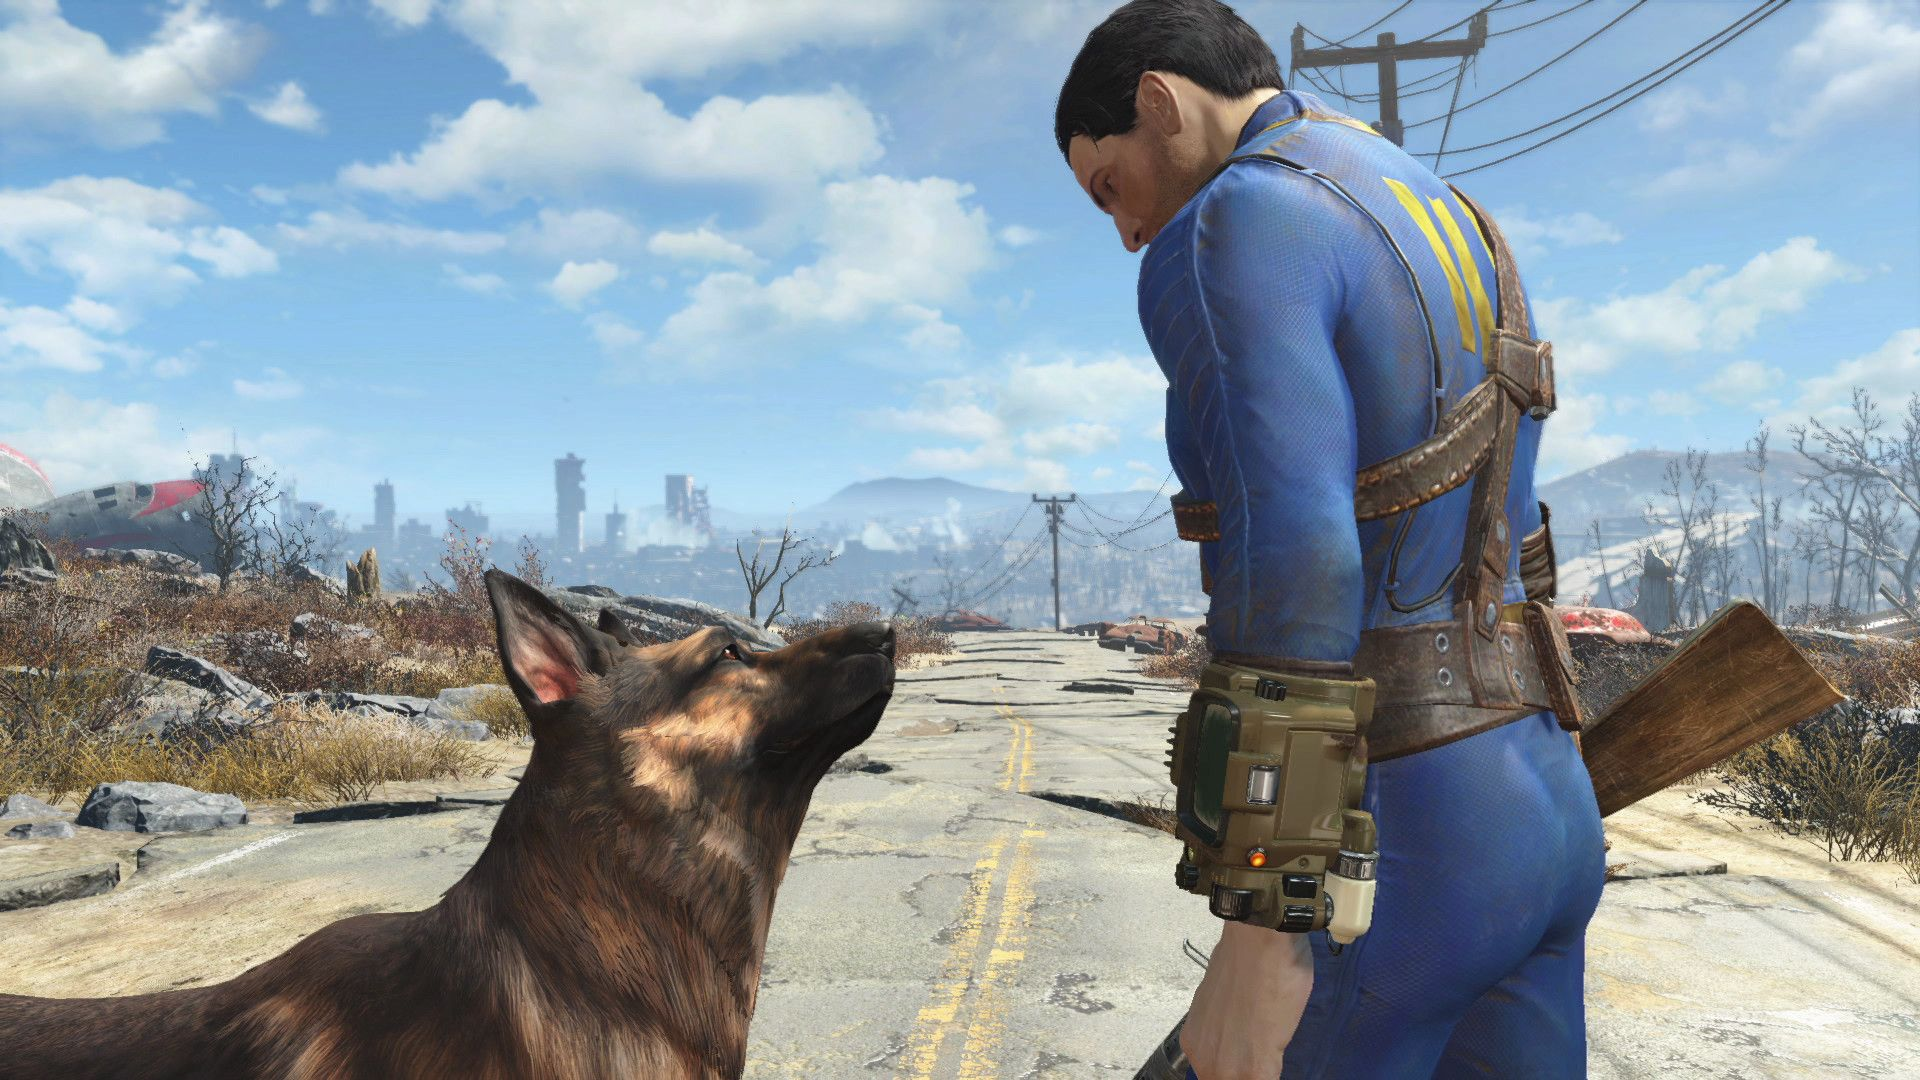 A screenshot from Fallout 4 showing the vault dweller, in their blue and yellow jumpsuit, and Dogmeat, a scruffy Alsatian. They are standing in a blasted, iradiated wilderness, but looking at each other fondly.